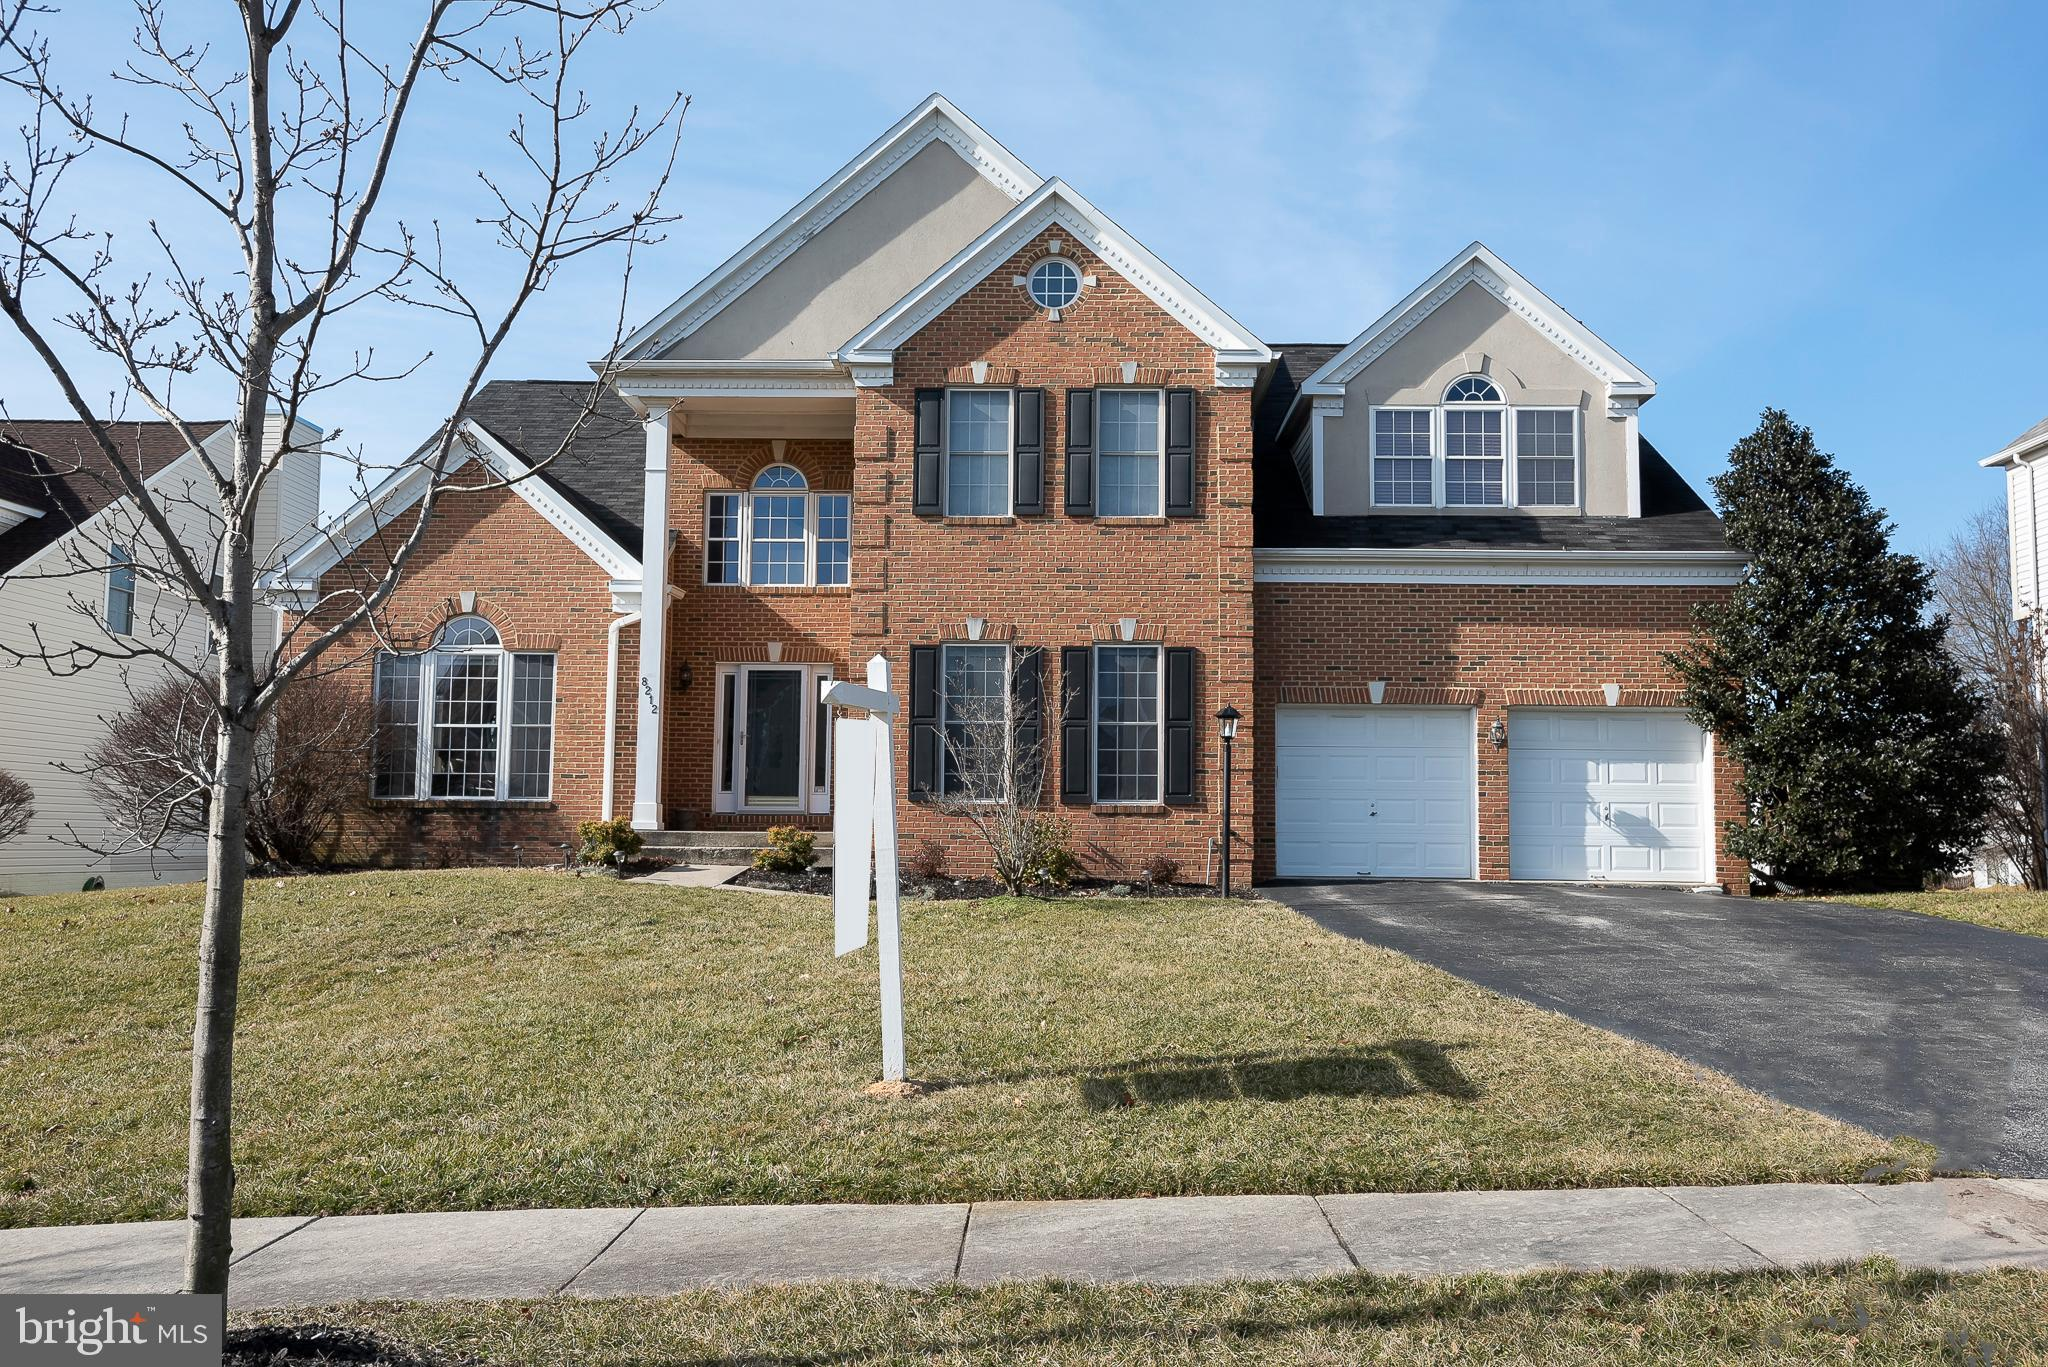 8212 HORTONIA POINT DRIVE, MILLERSVILLE, MD 21108